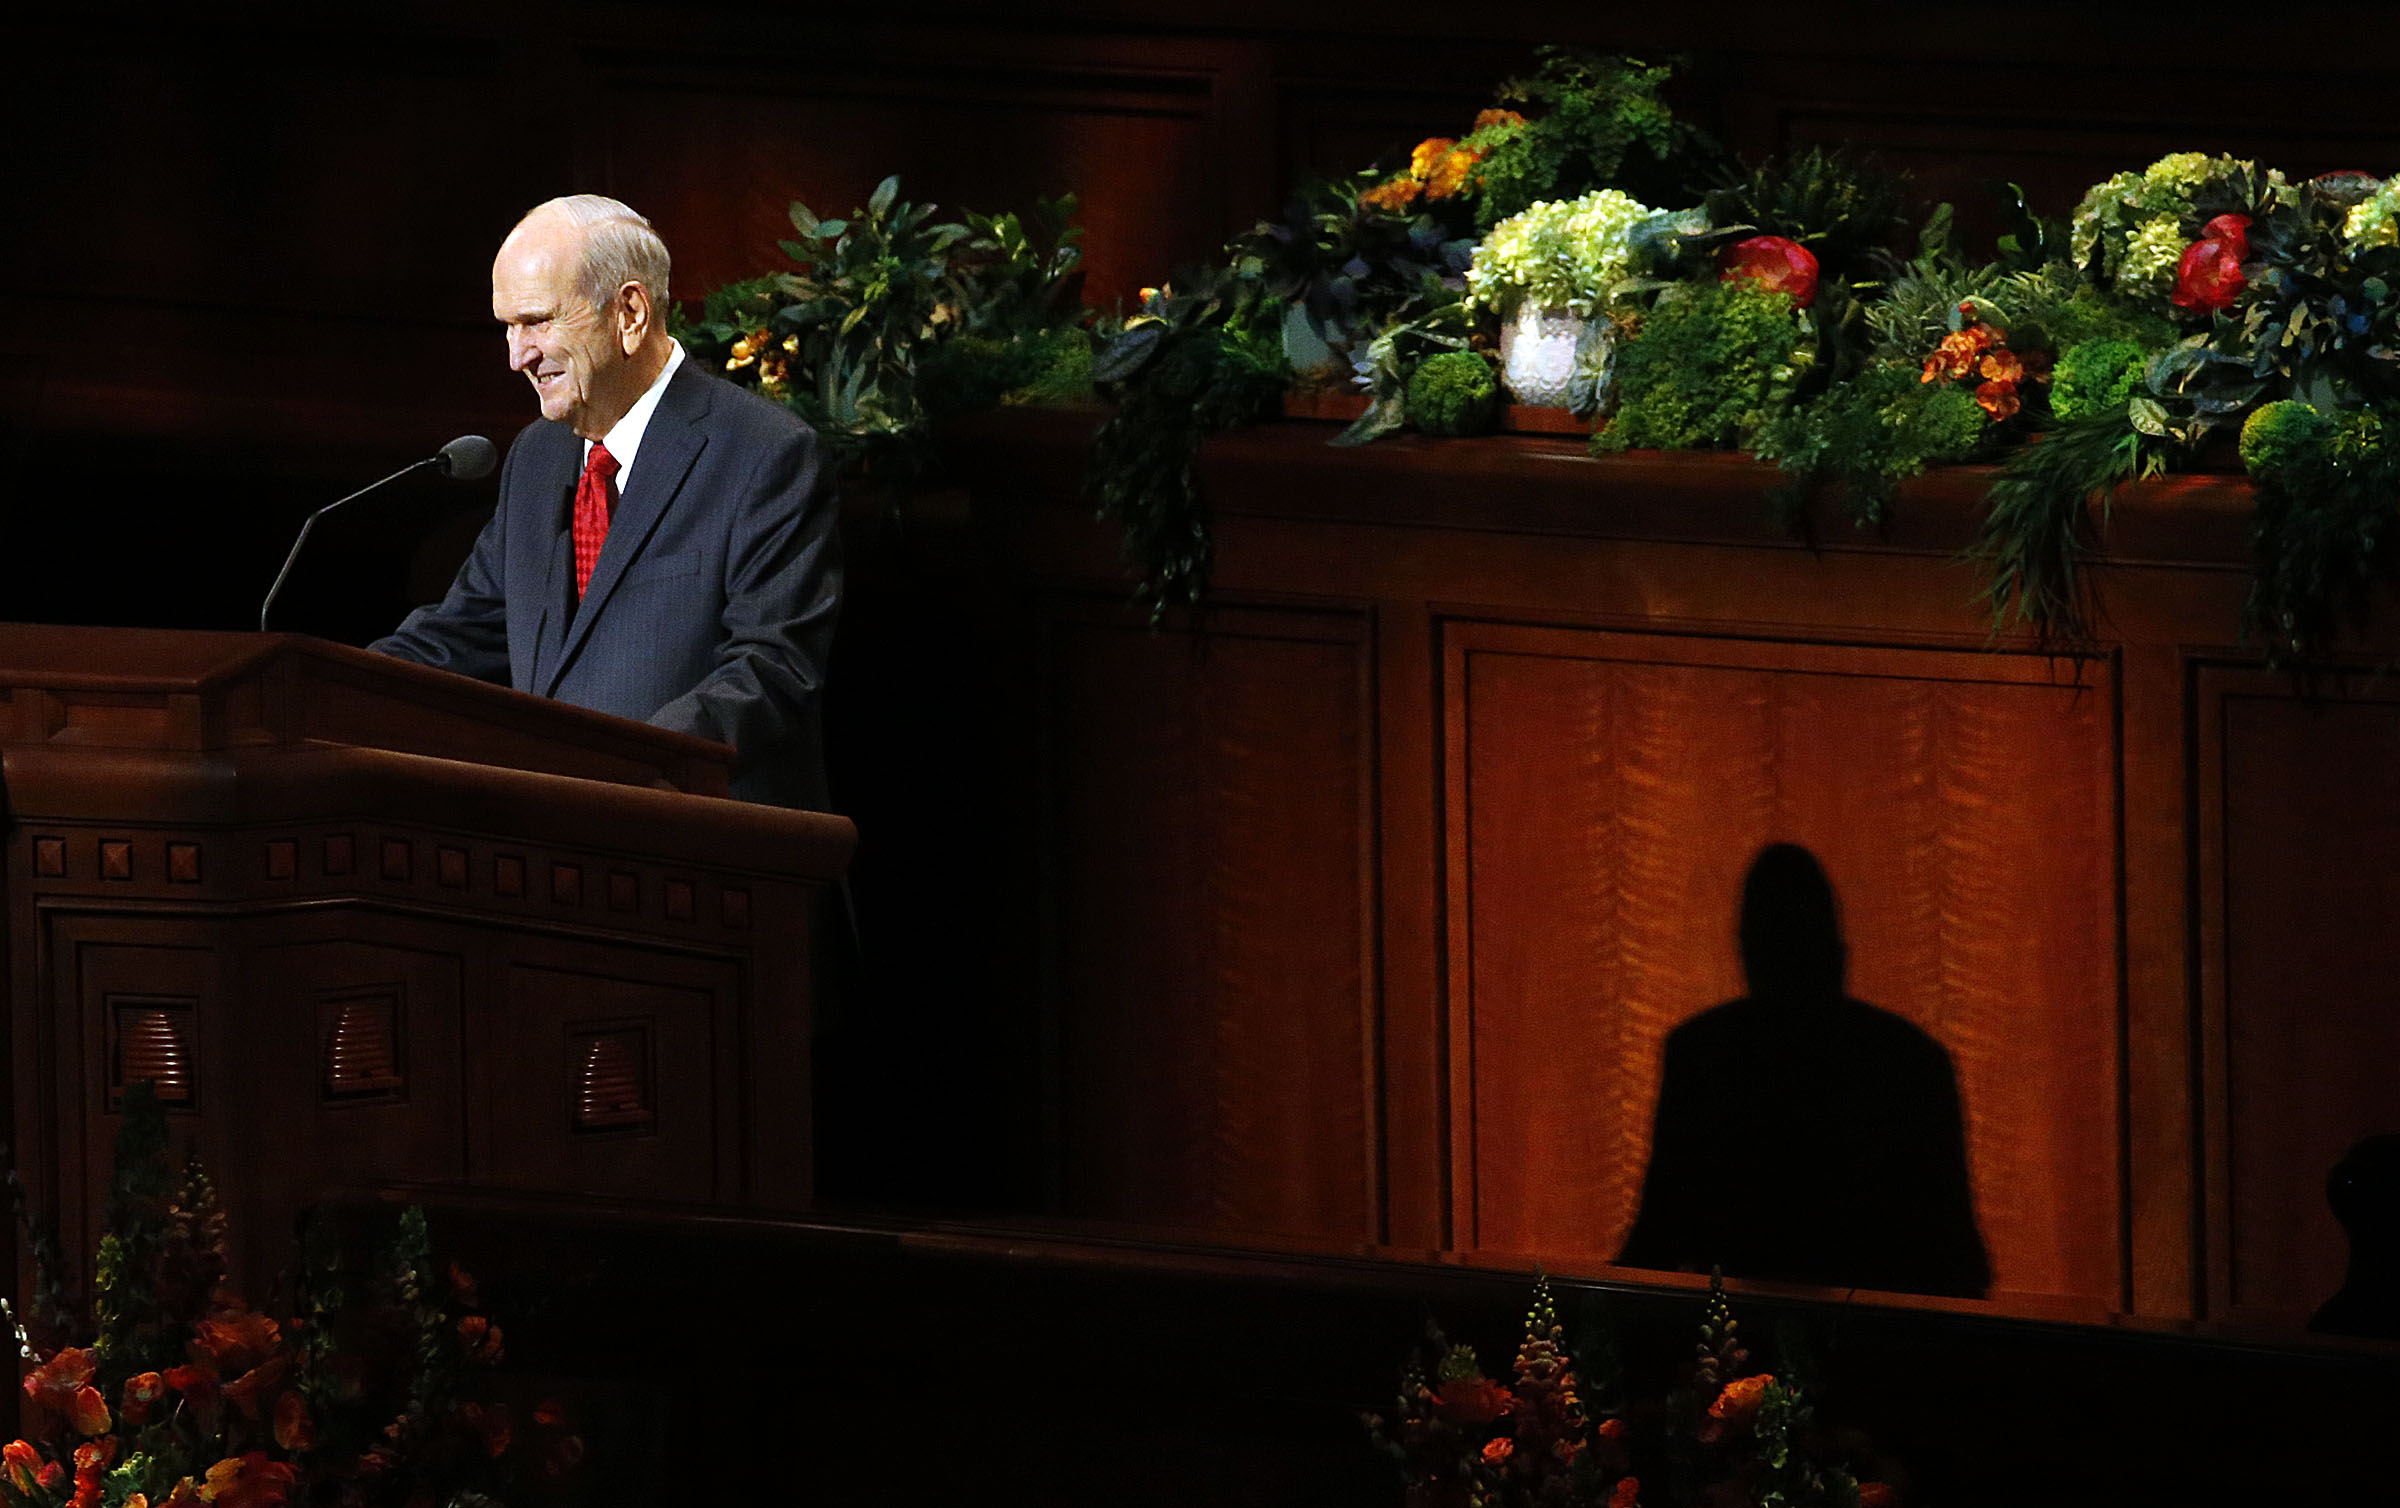 President Russell M. Nelson of The Church of Jesus Christ of Latter-day Saints speaks during the priesthood session of the Annual General Conference in the Conference Center in Salt Lake City on Saturday, April 6, 2019.